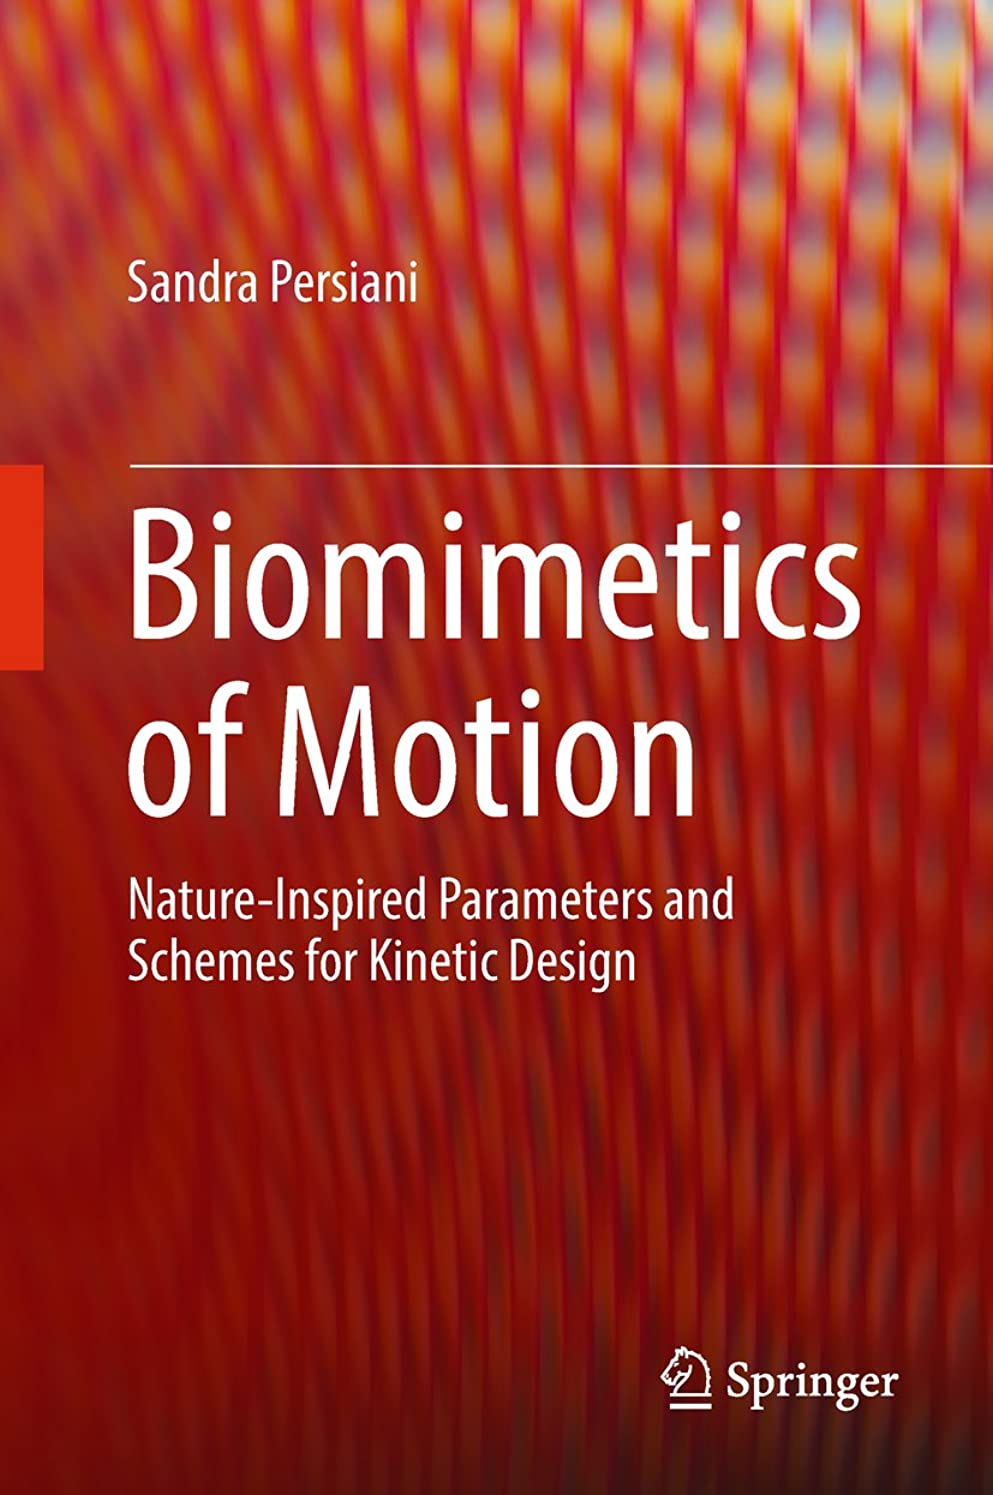 乱暴な真珠のような天窓Biomimetics of Motion: Nature-Inspired Parameters and Schemes for Kinetic Design (English Edition)